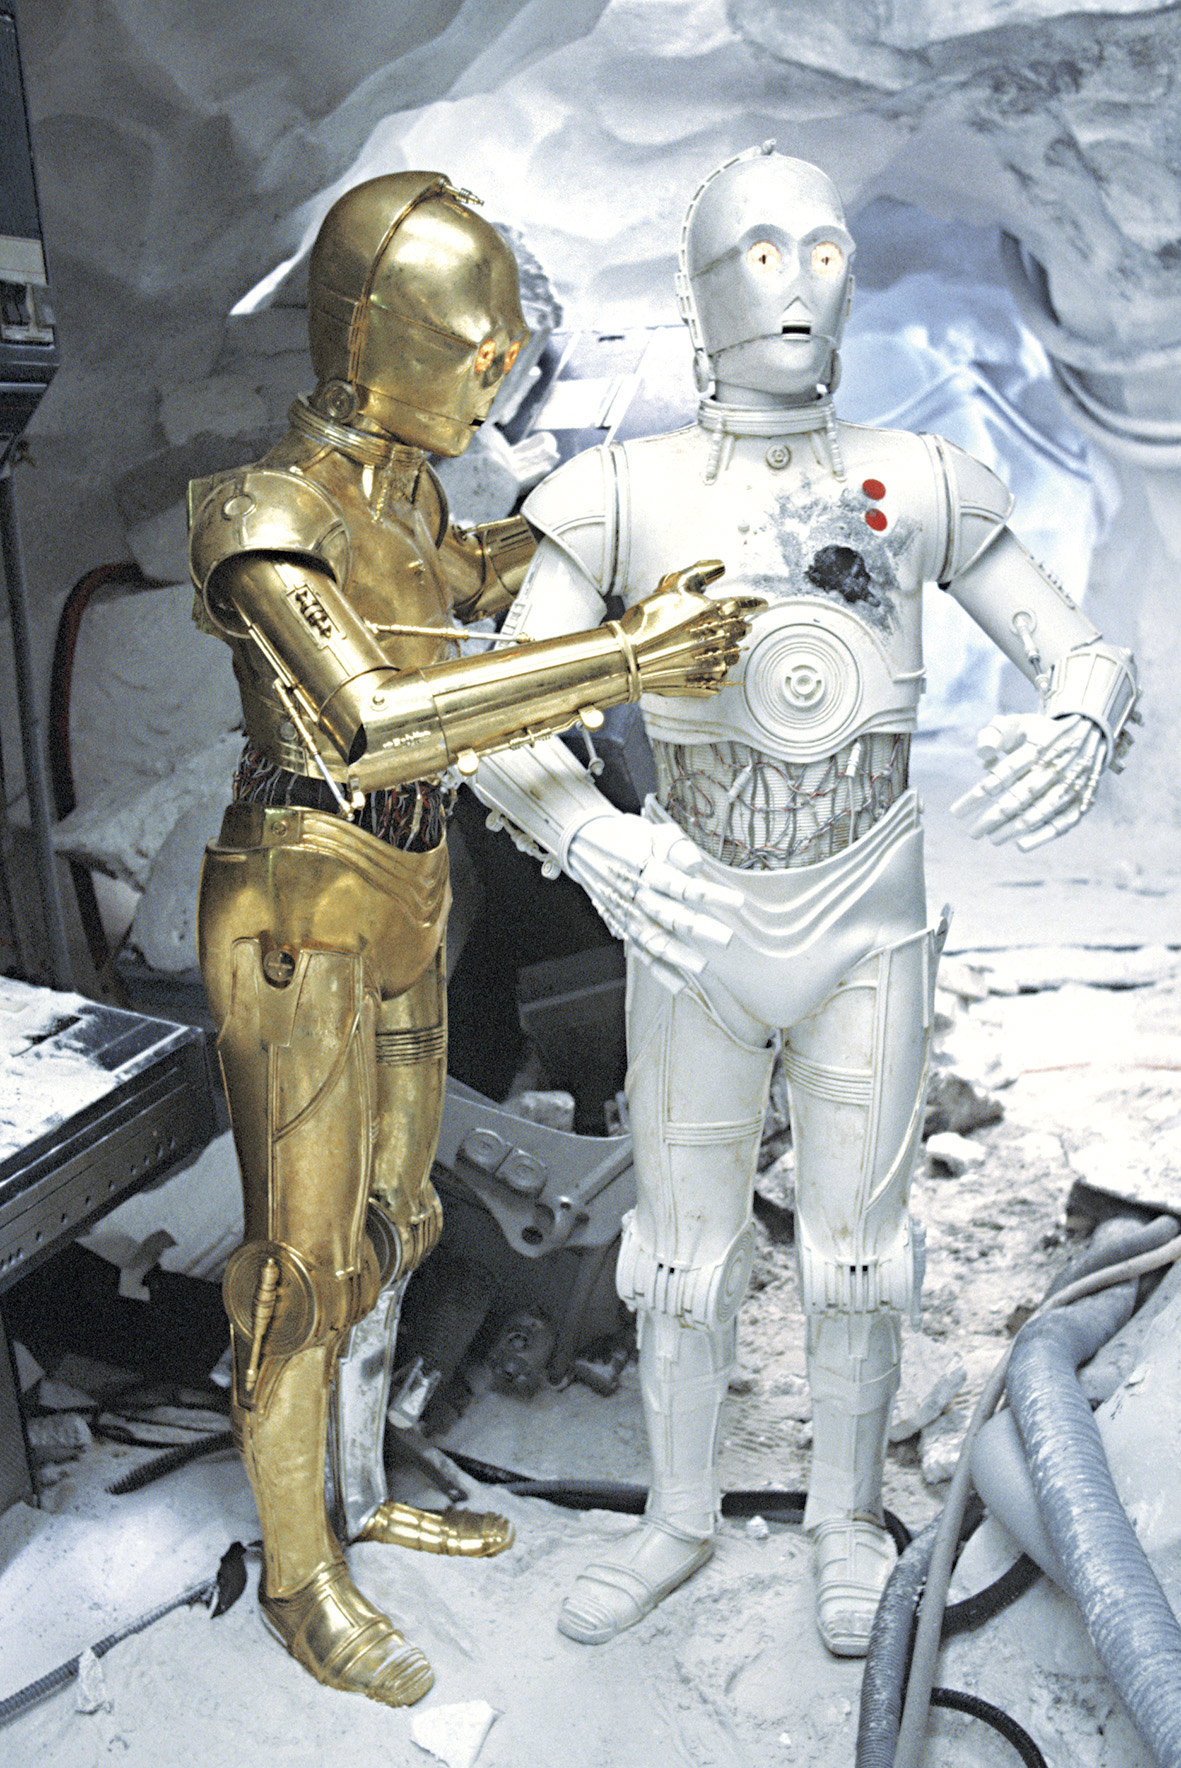 Star Wars: The Empire Strikes Back 40th Anniversary Special excerpt - C-3PO